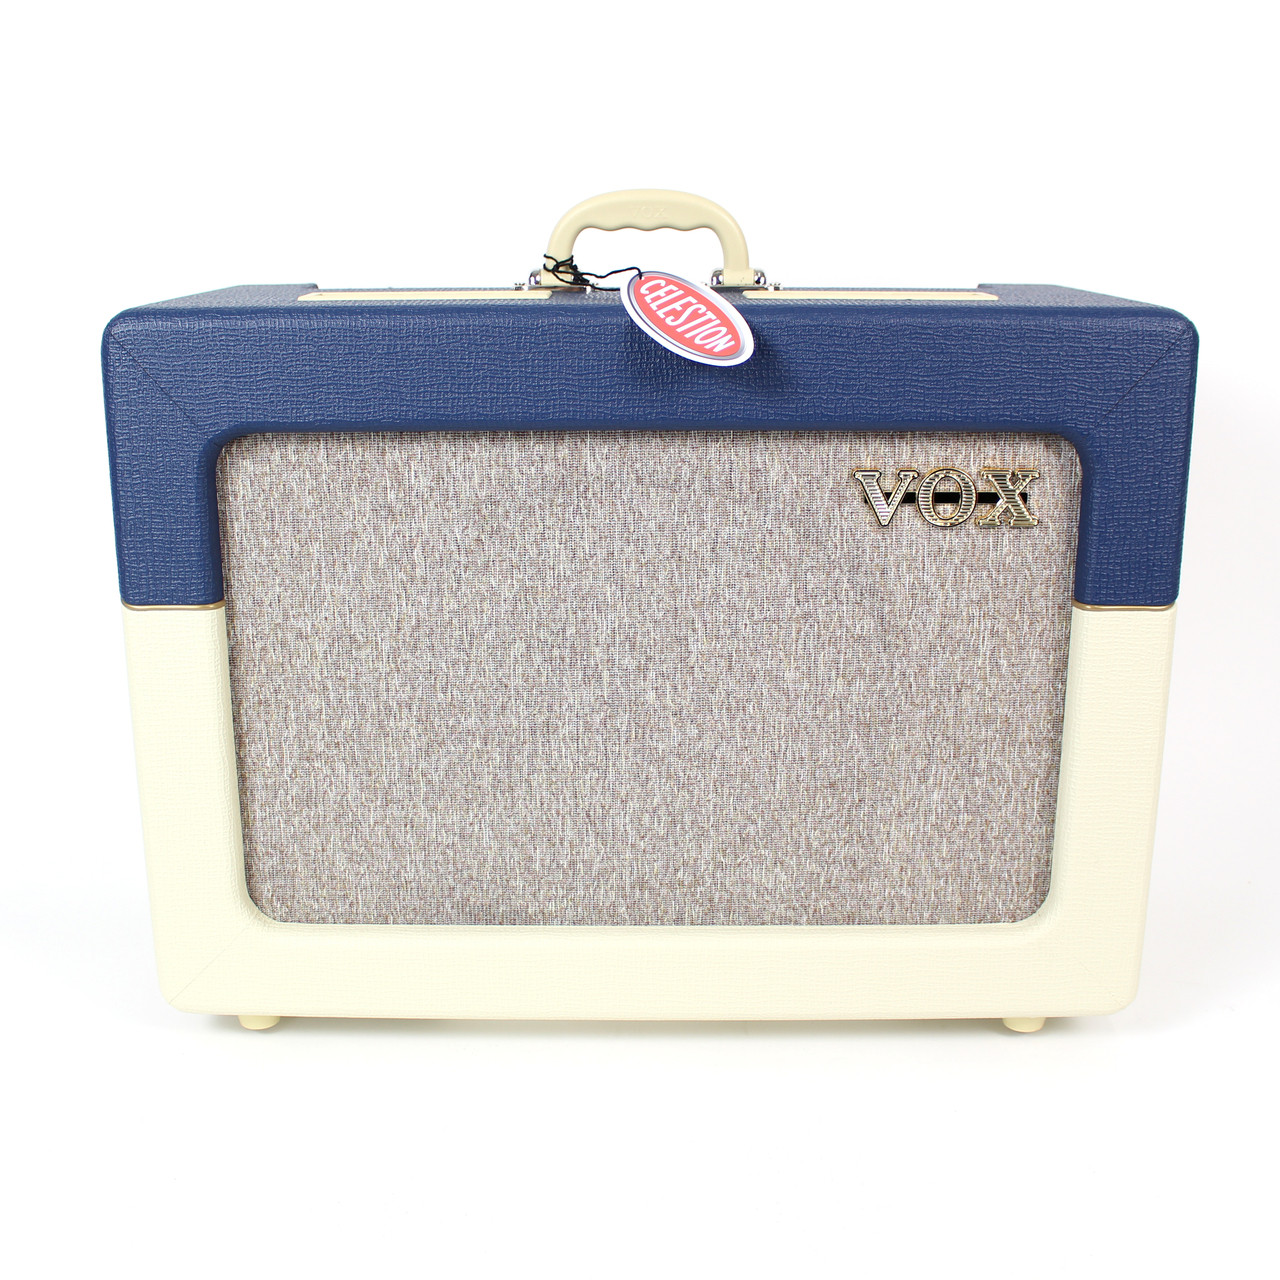 New Vox AC15C1-TV-BC Limited Edition 15W 1x12 Tube Combo Amp | Cream ...